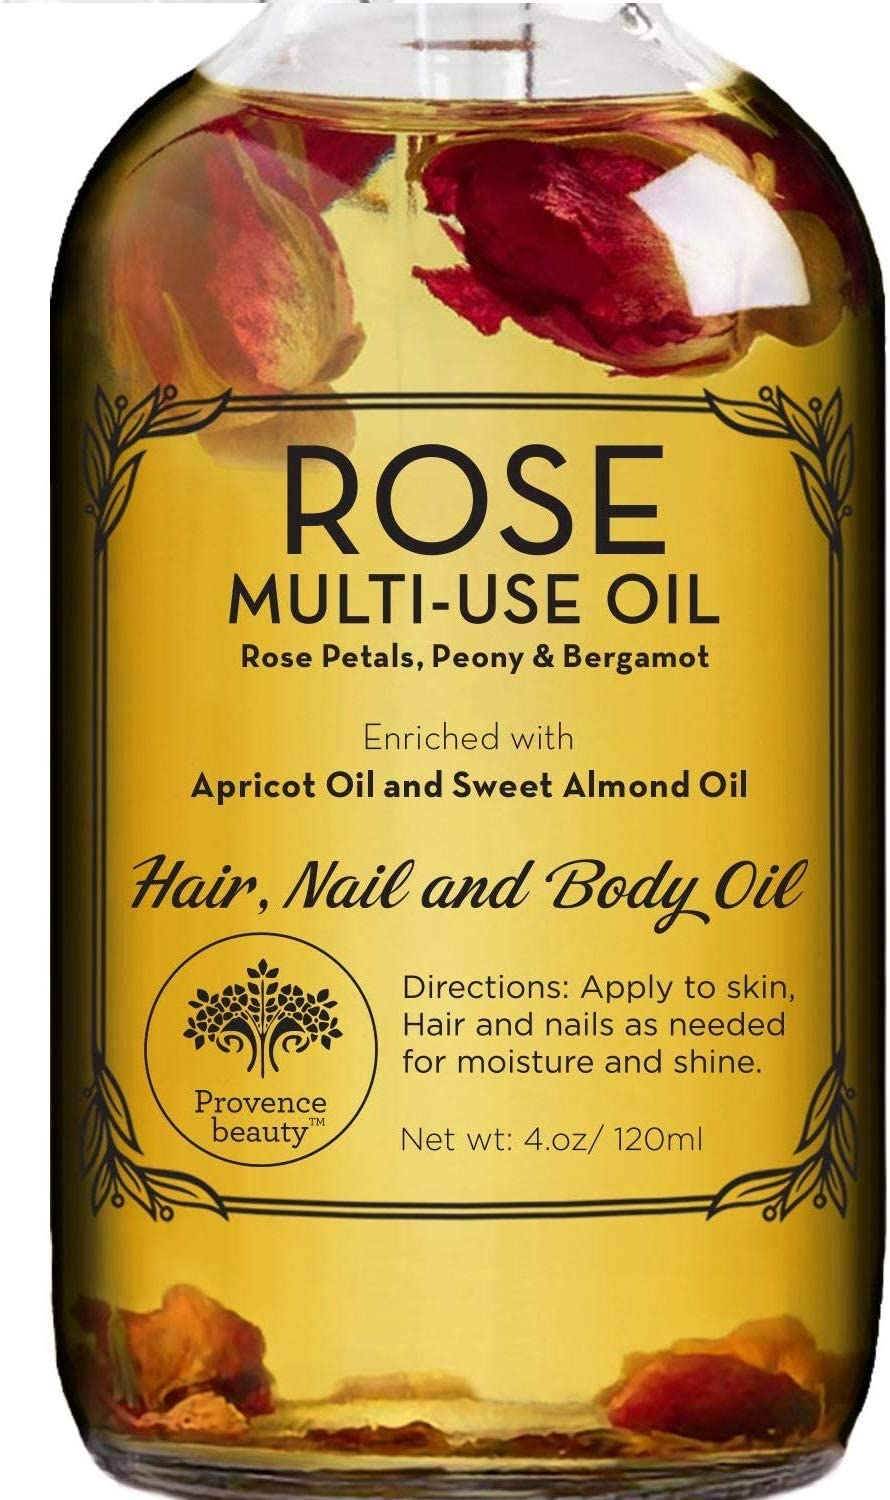 Rose Multi-Use Oil for Face, Body and Hair - Organic Blend of Apricot